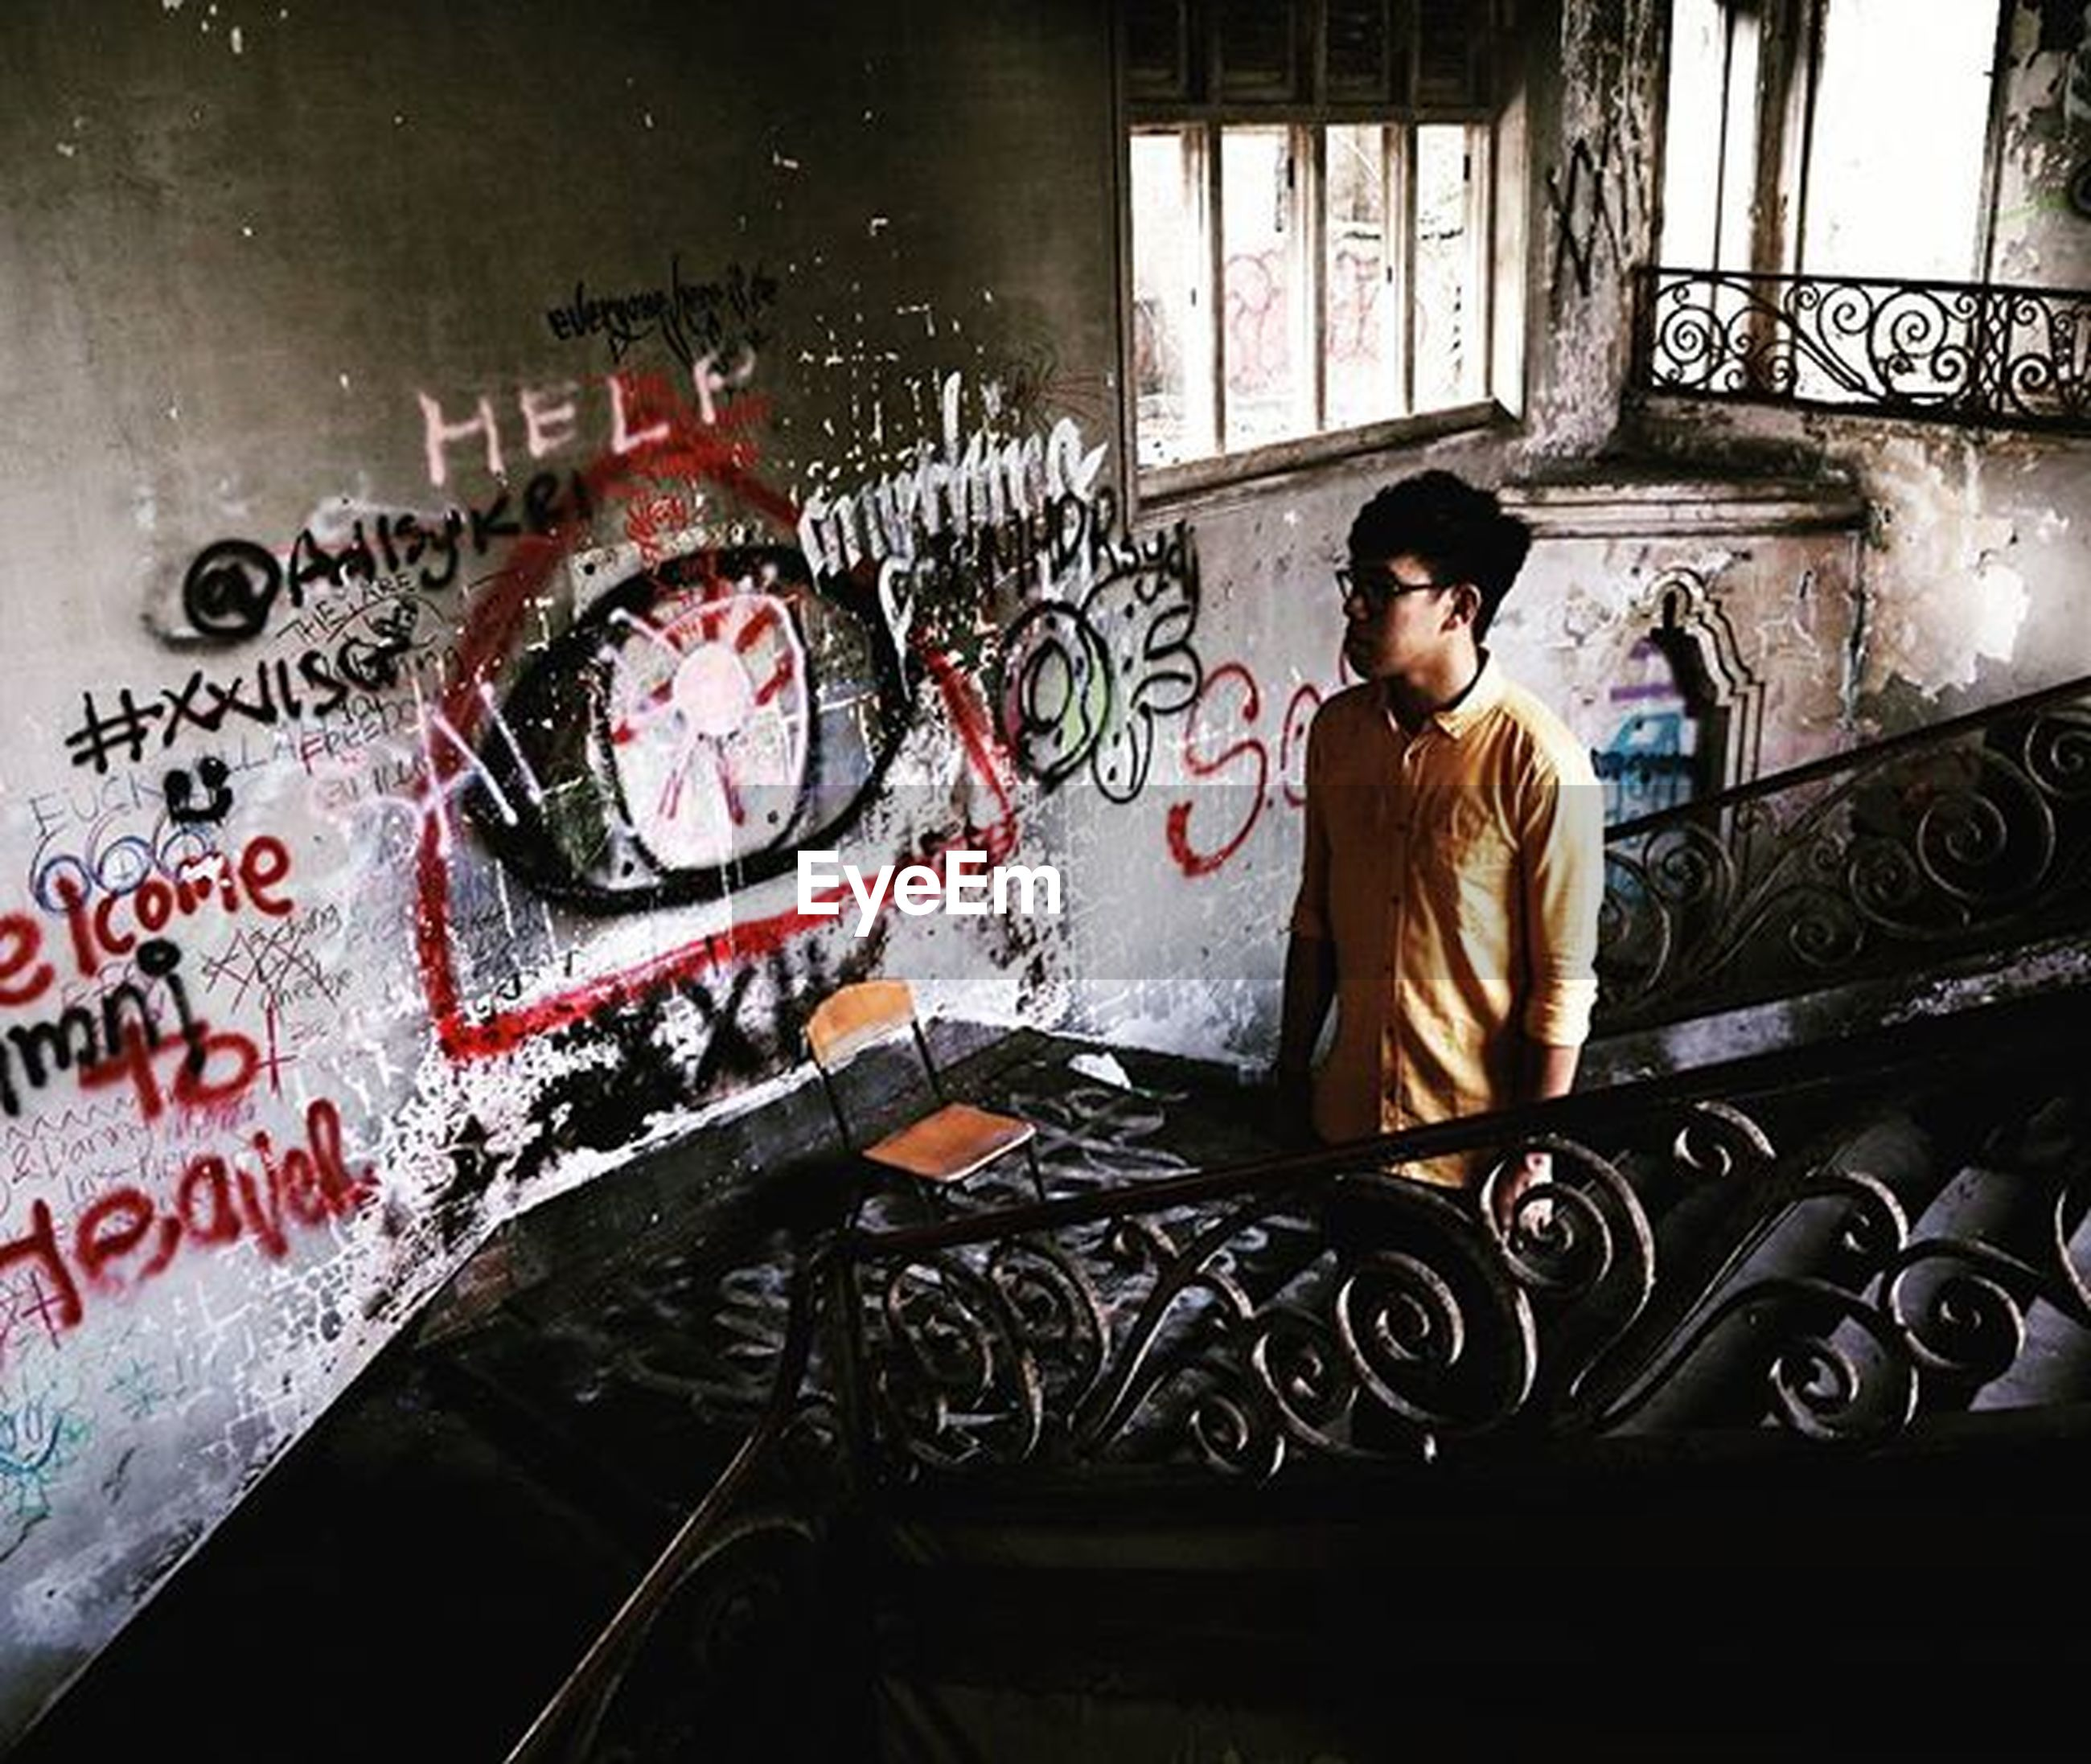 indoors, lifestyles, text, casual clothing, communication, leisure activity, graffiti, men, transportation, young men, mode of transport, wall - building feature, standing, technology, person, western script, architecture, built structure